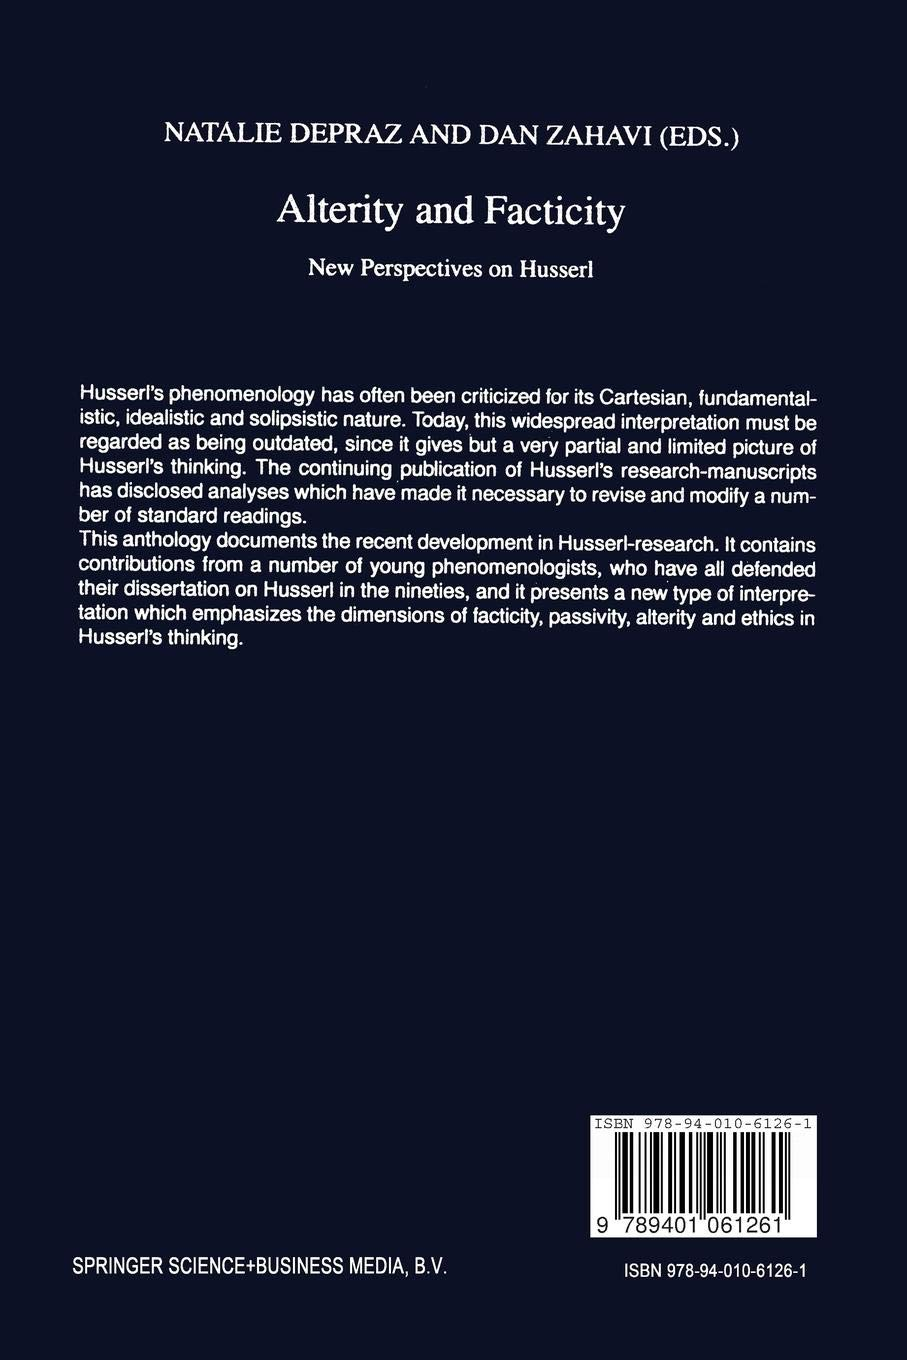 Alterity and Facticity: New Perspectives on Husserl